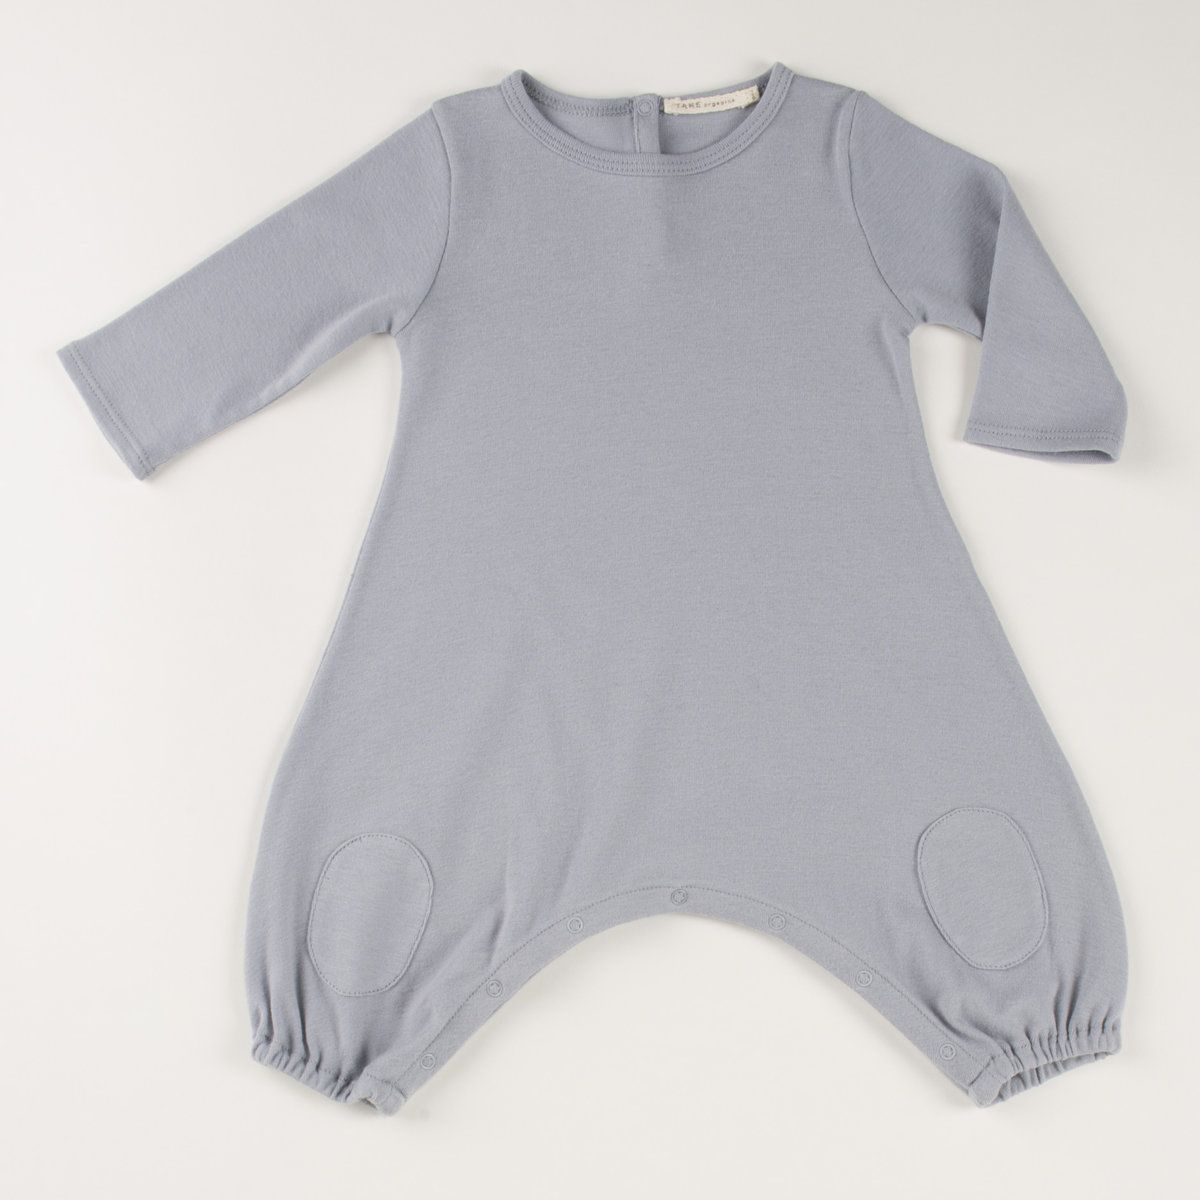 54006ff49f388 Luxurious Organic Infant and Baby Clothing  onesies   Balloon Onesie w   Knee Patch